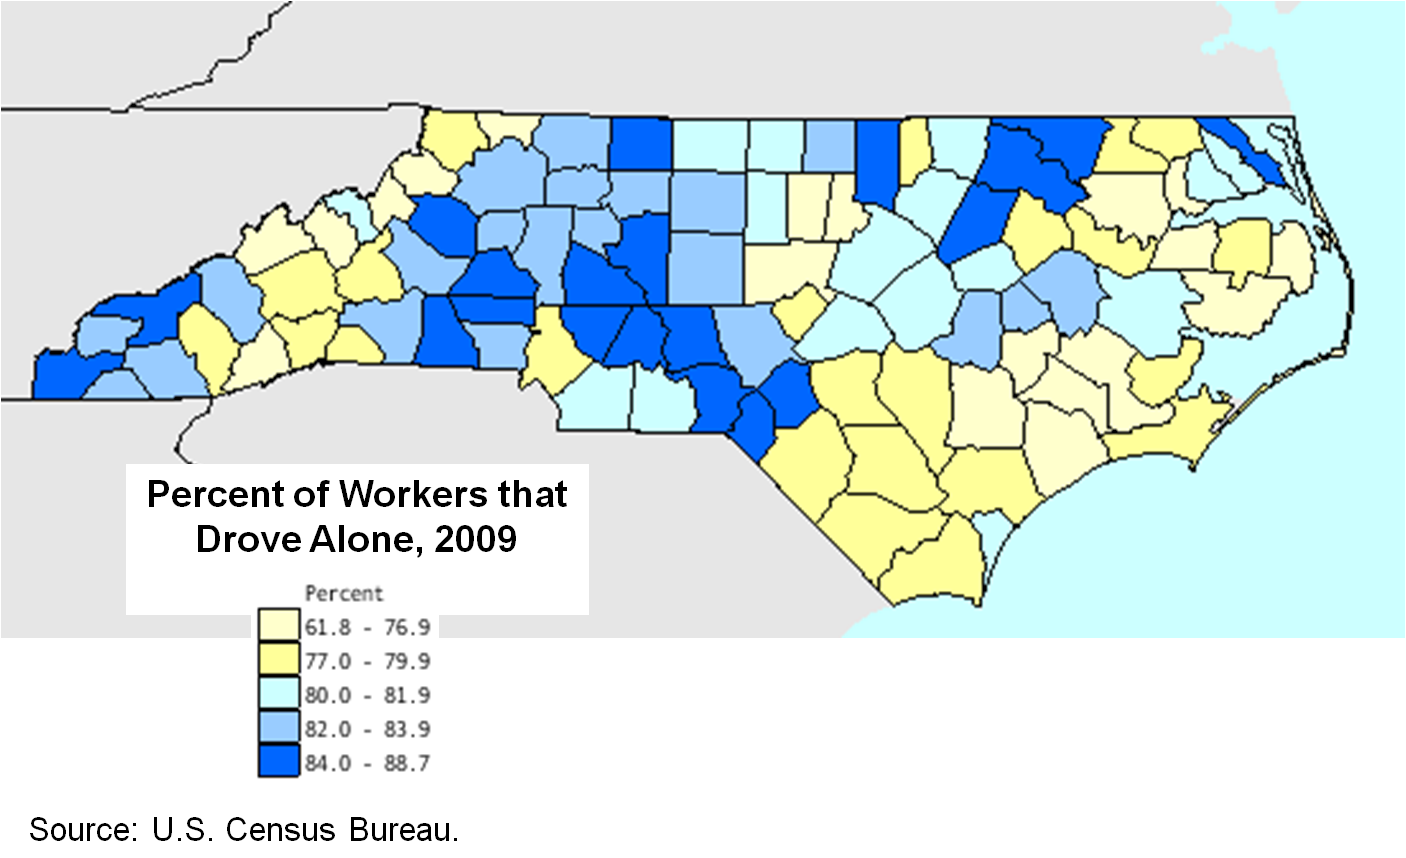 Drove to work alone by county, 2009